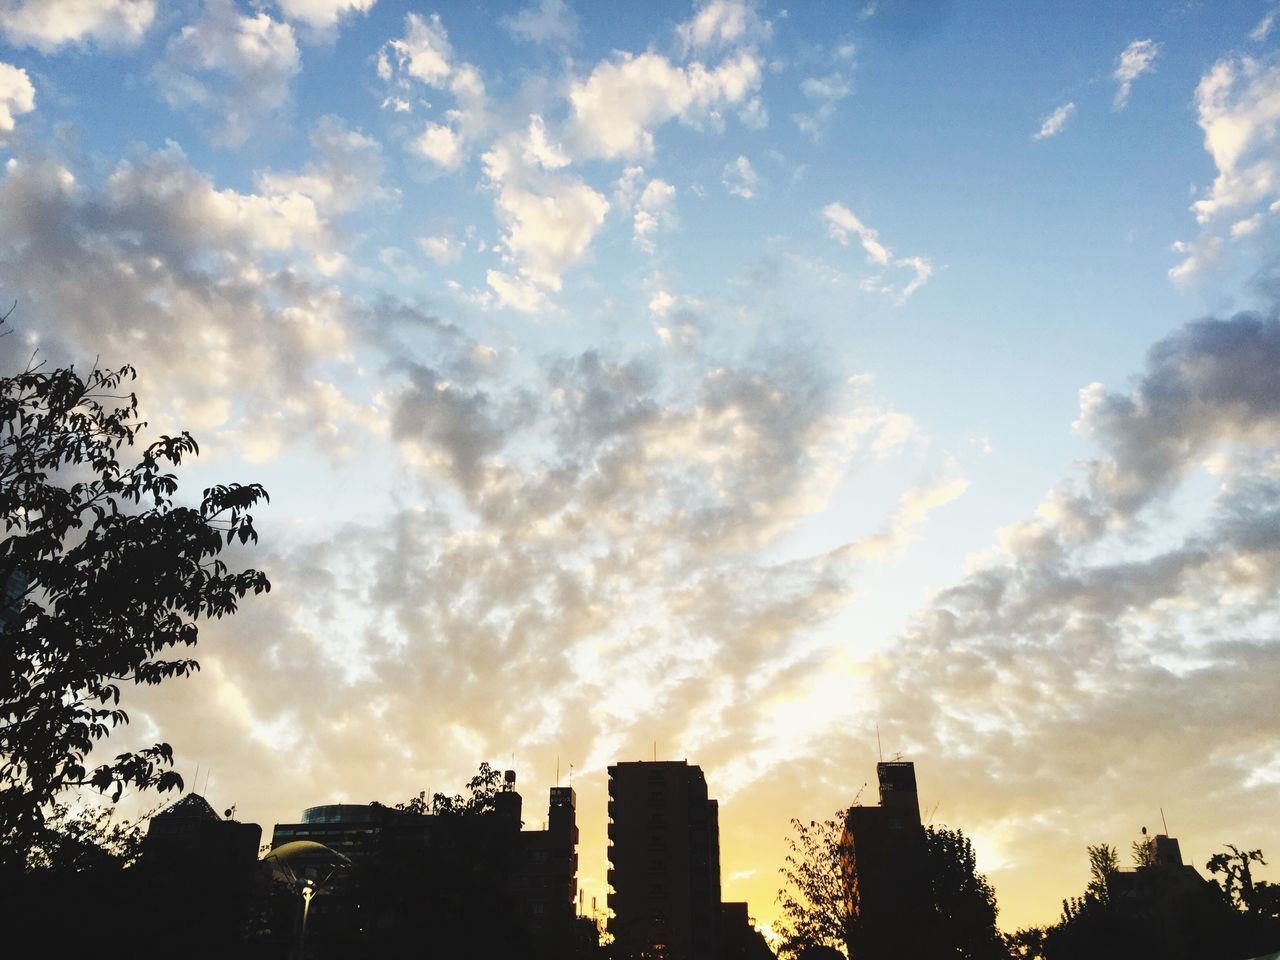 sky, silhouette, cloud - sky, low angle view, architecture, building exterior, tree, built structure, sunset, no people, outdoors, beauty in nature, growth, nature, city, day